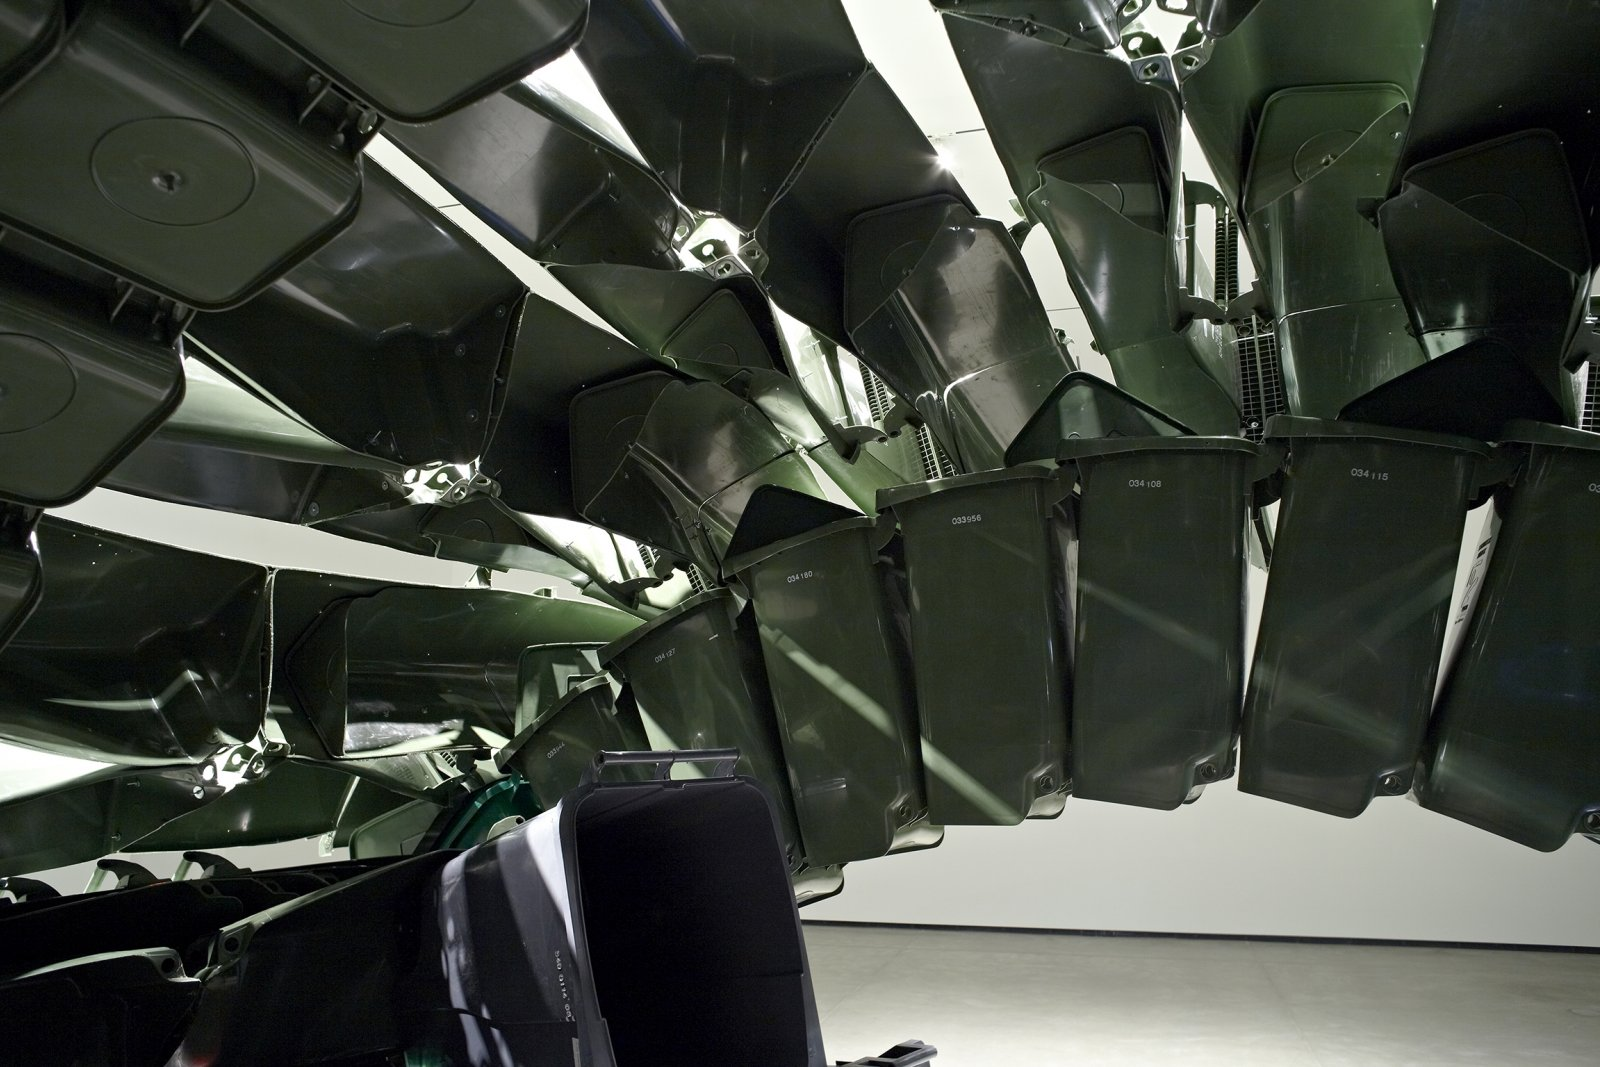 Brian Jungen,Carapace(detail), 2009–2011, plastic recycling containers, 144 x 264 x 252 in. (370 x 670 x 640 cm). Installation view, Art Gallery of Alberta,Edmonton, AB, 2011